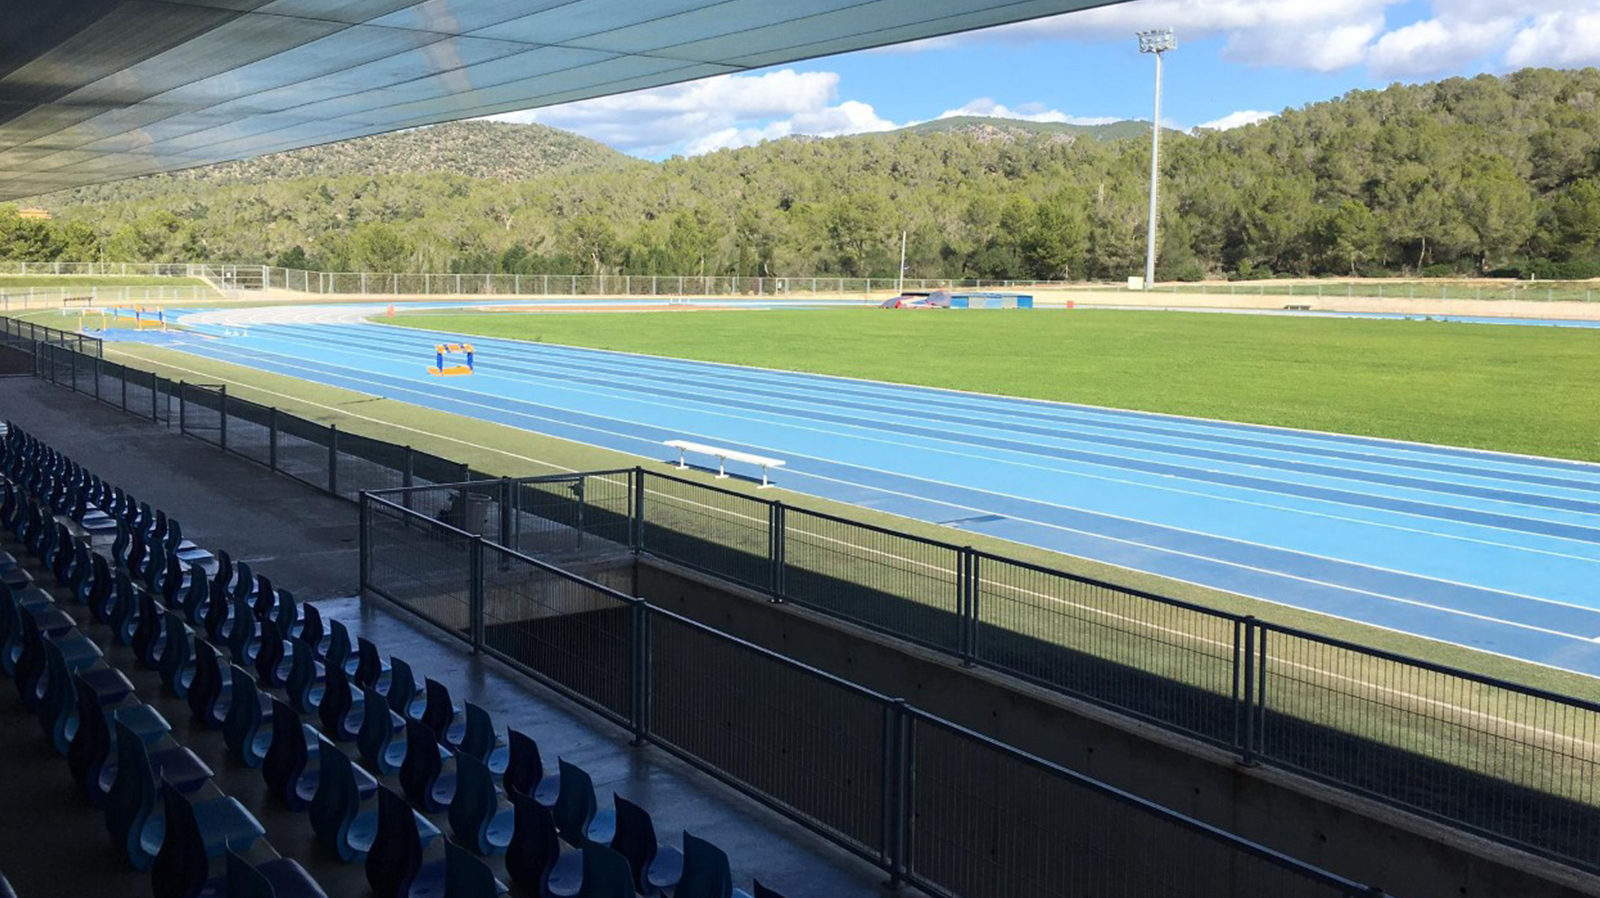 Athletics track in Magaluf , Entrena atletismo en Mallorca , Athletics track in Mallorca